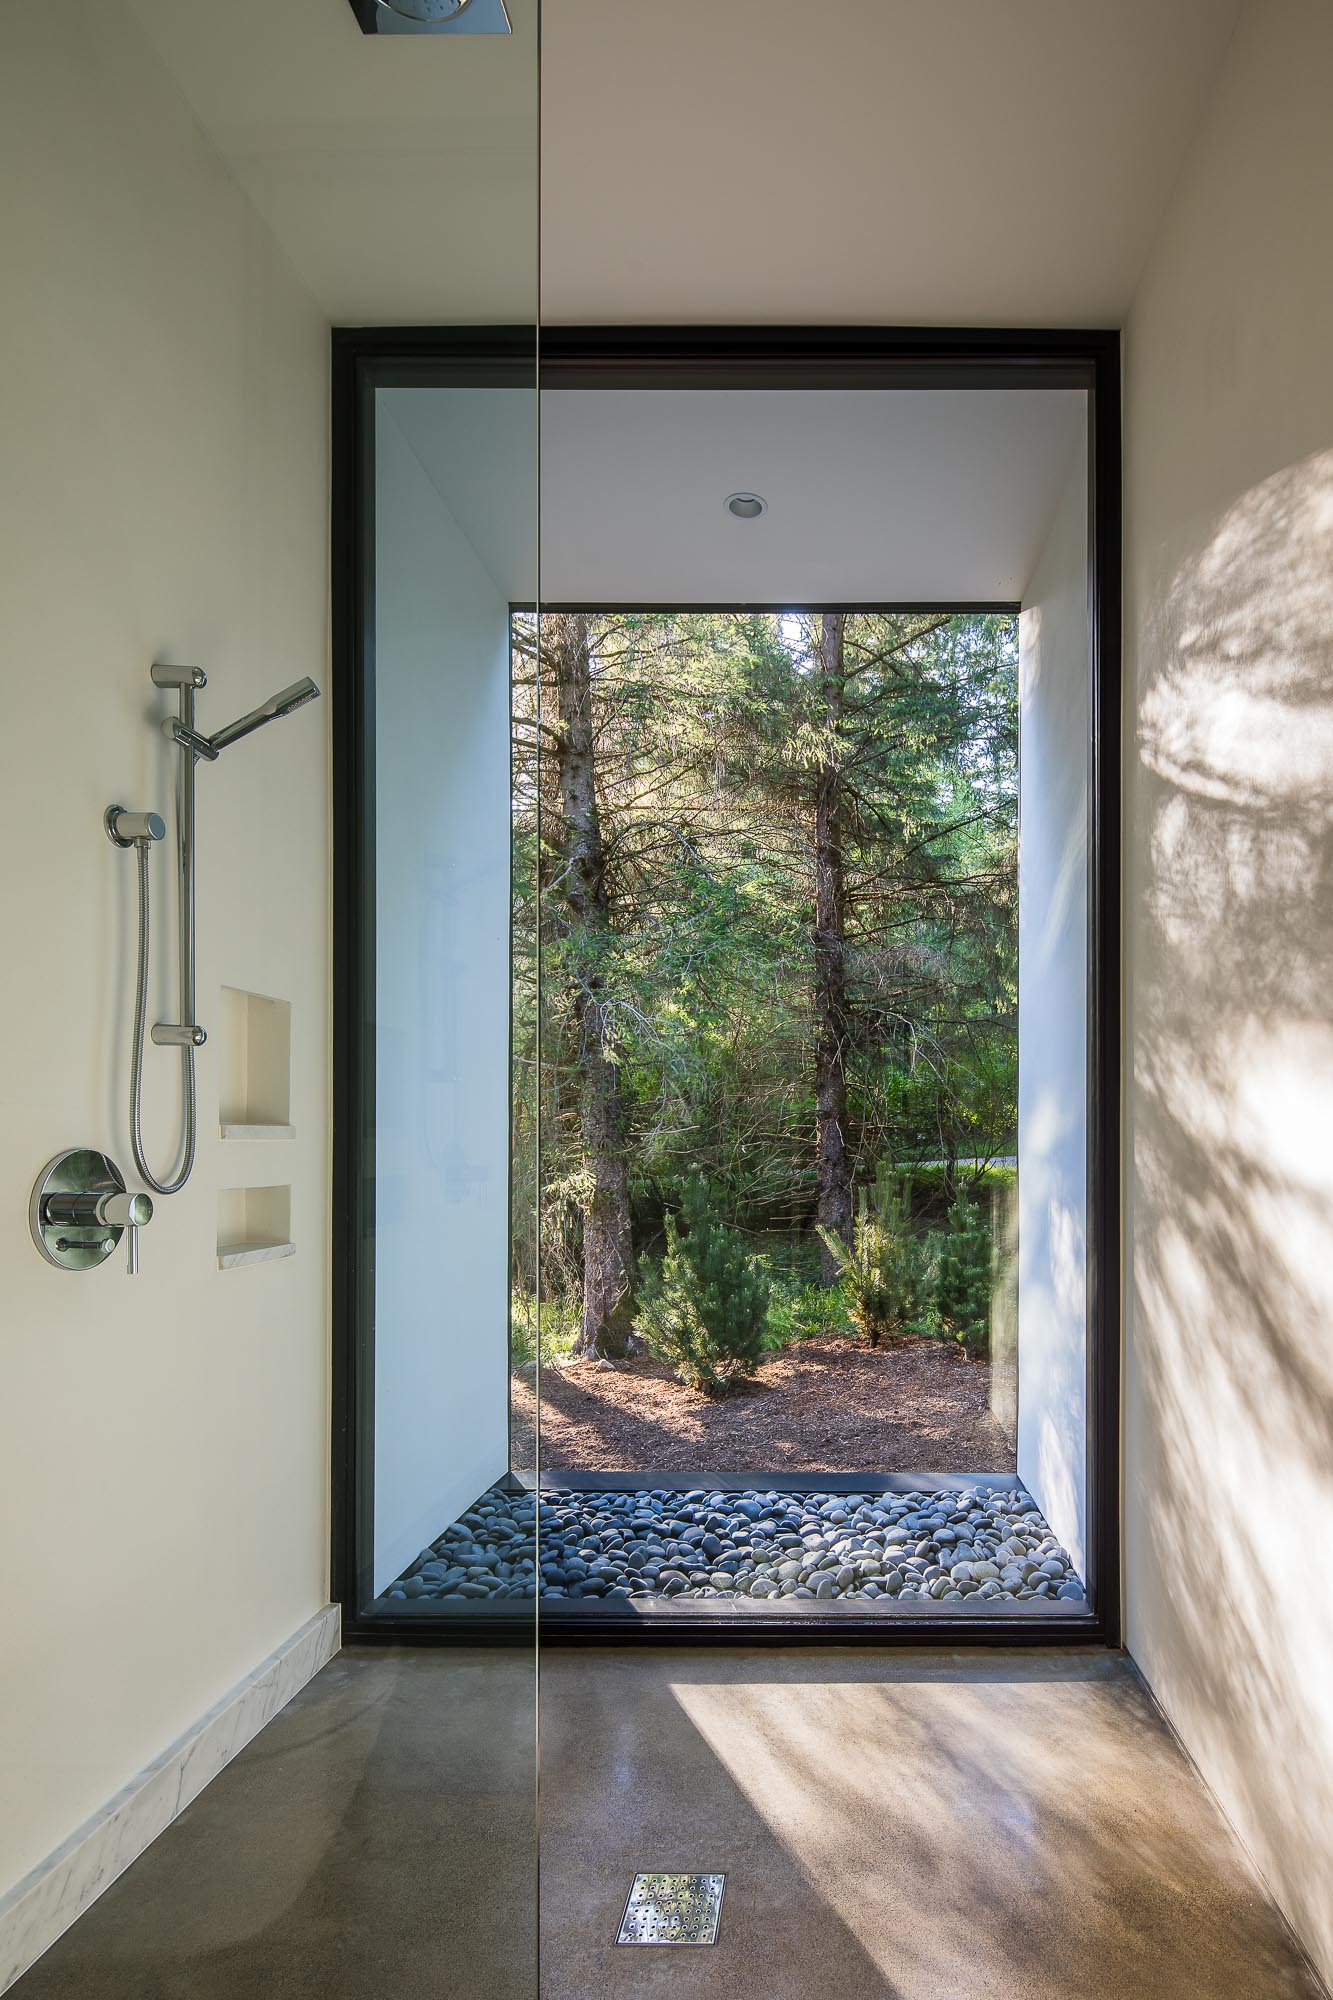 This modern bathroom includes a shower that has an uninterrupted view of the trees.